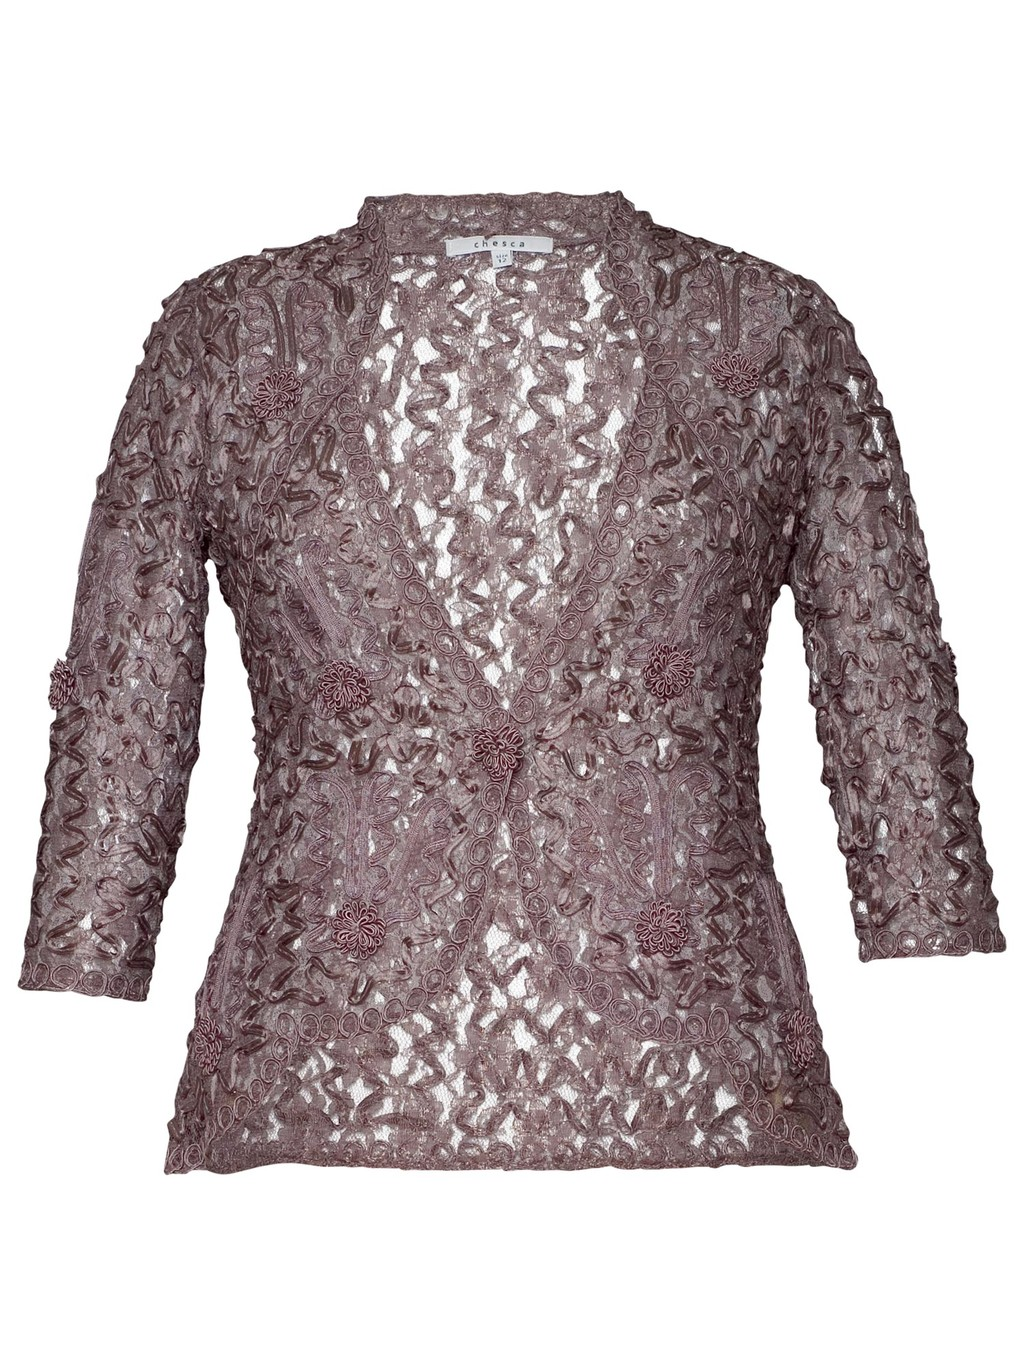 Lace Cornelli Embroidered Trim Jacket, Mocha - style: bolero/shrug; collar: round collar/collarless; fit: slim fit; predominant colour: taupe; occasions: evening, occasion; length: standard; fibres: nylon - mix; sleeve length: 3/4 length; sleeve style: standard; texture group: lace; collar break: medium; pattern type: fabric; pattern: patterned/print; embellishment: lace; season: a/w 2013